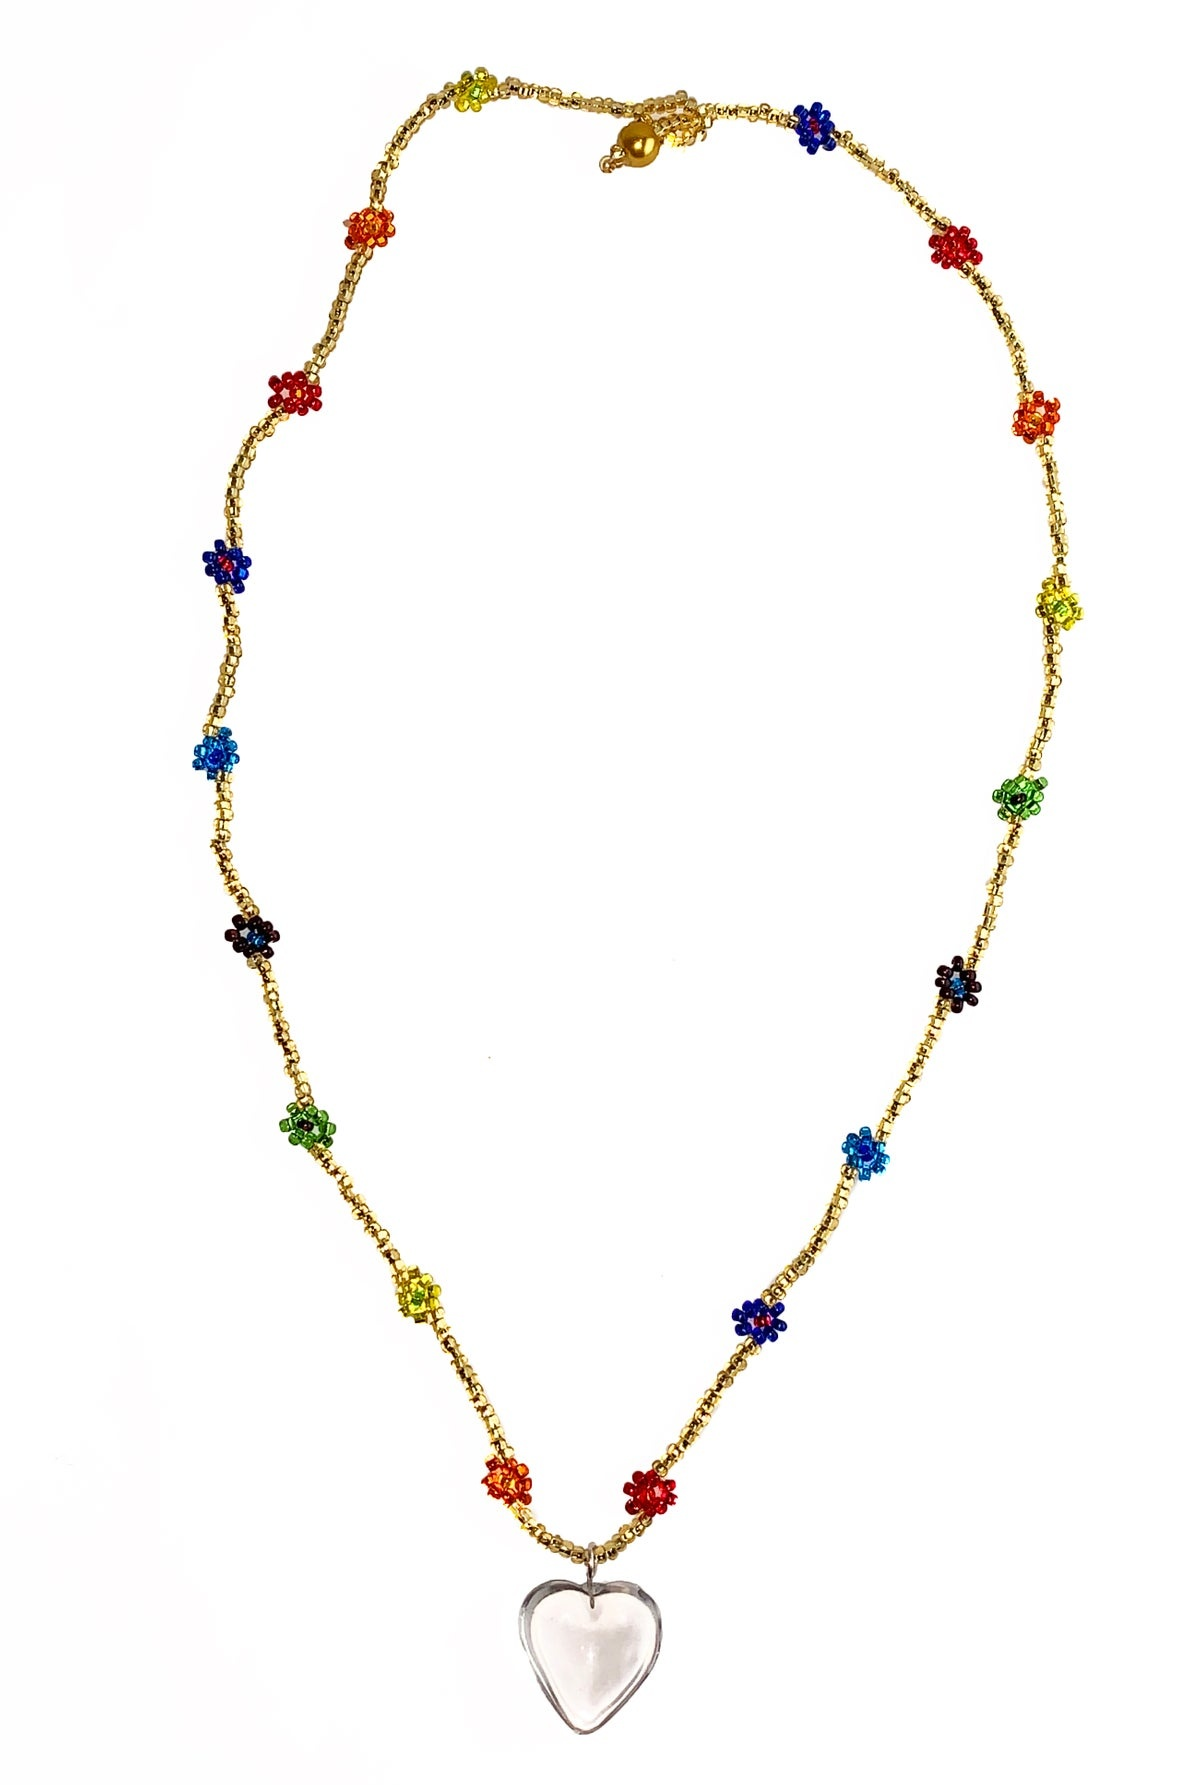 TUZA Chaquira Heart Necklace, Gold